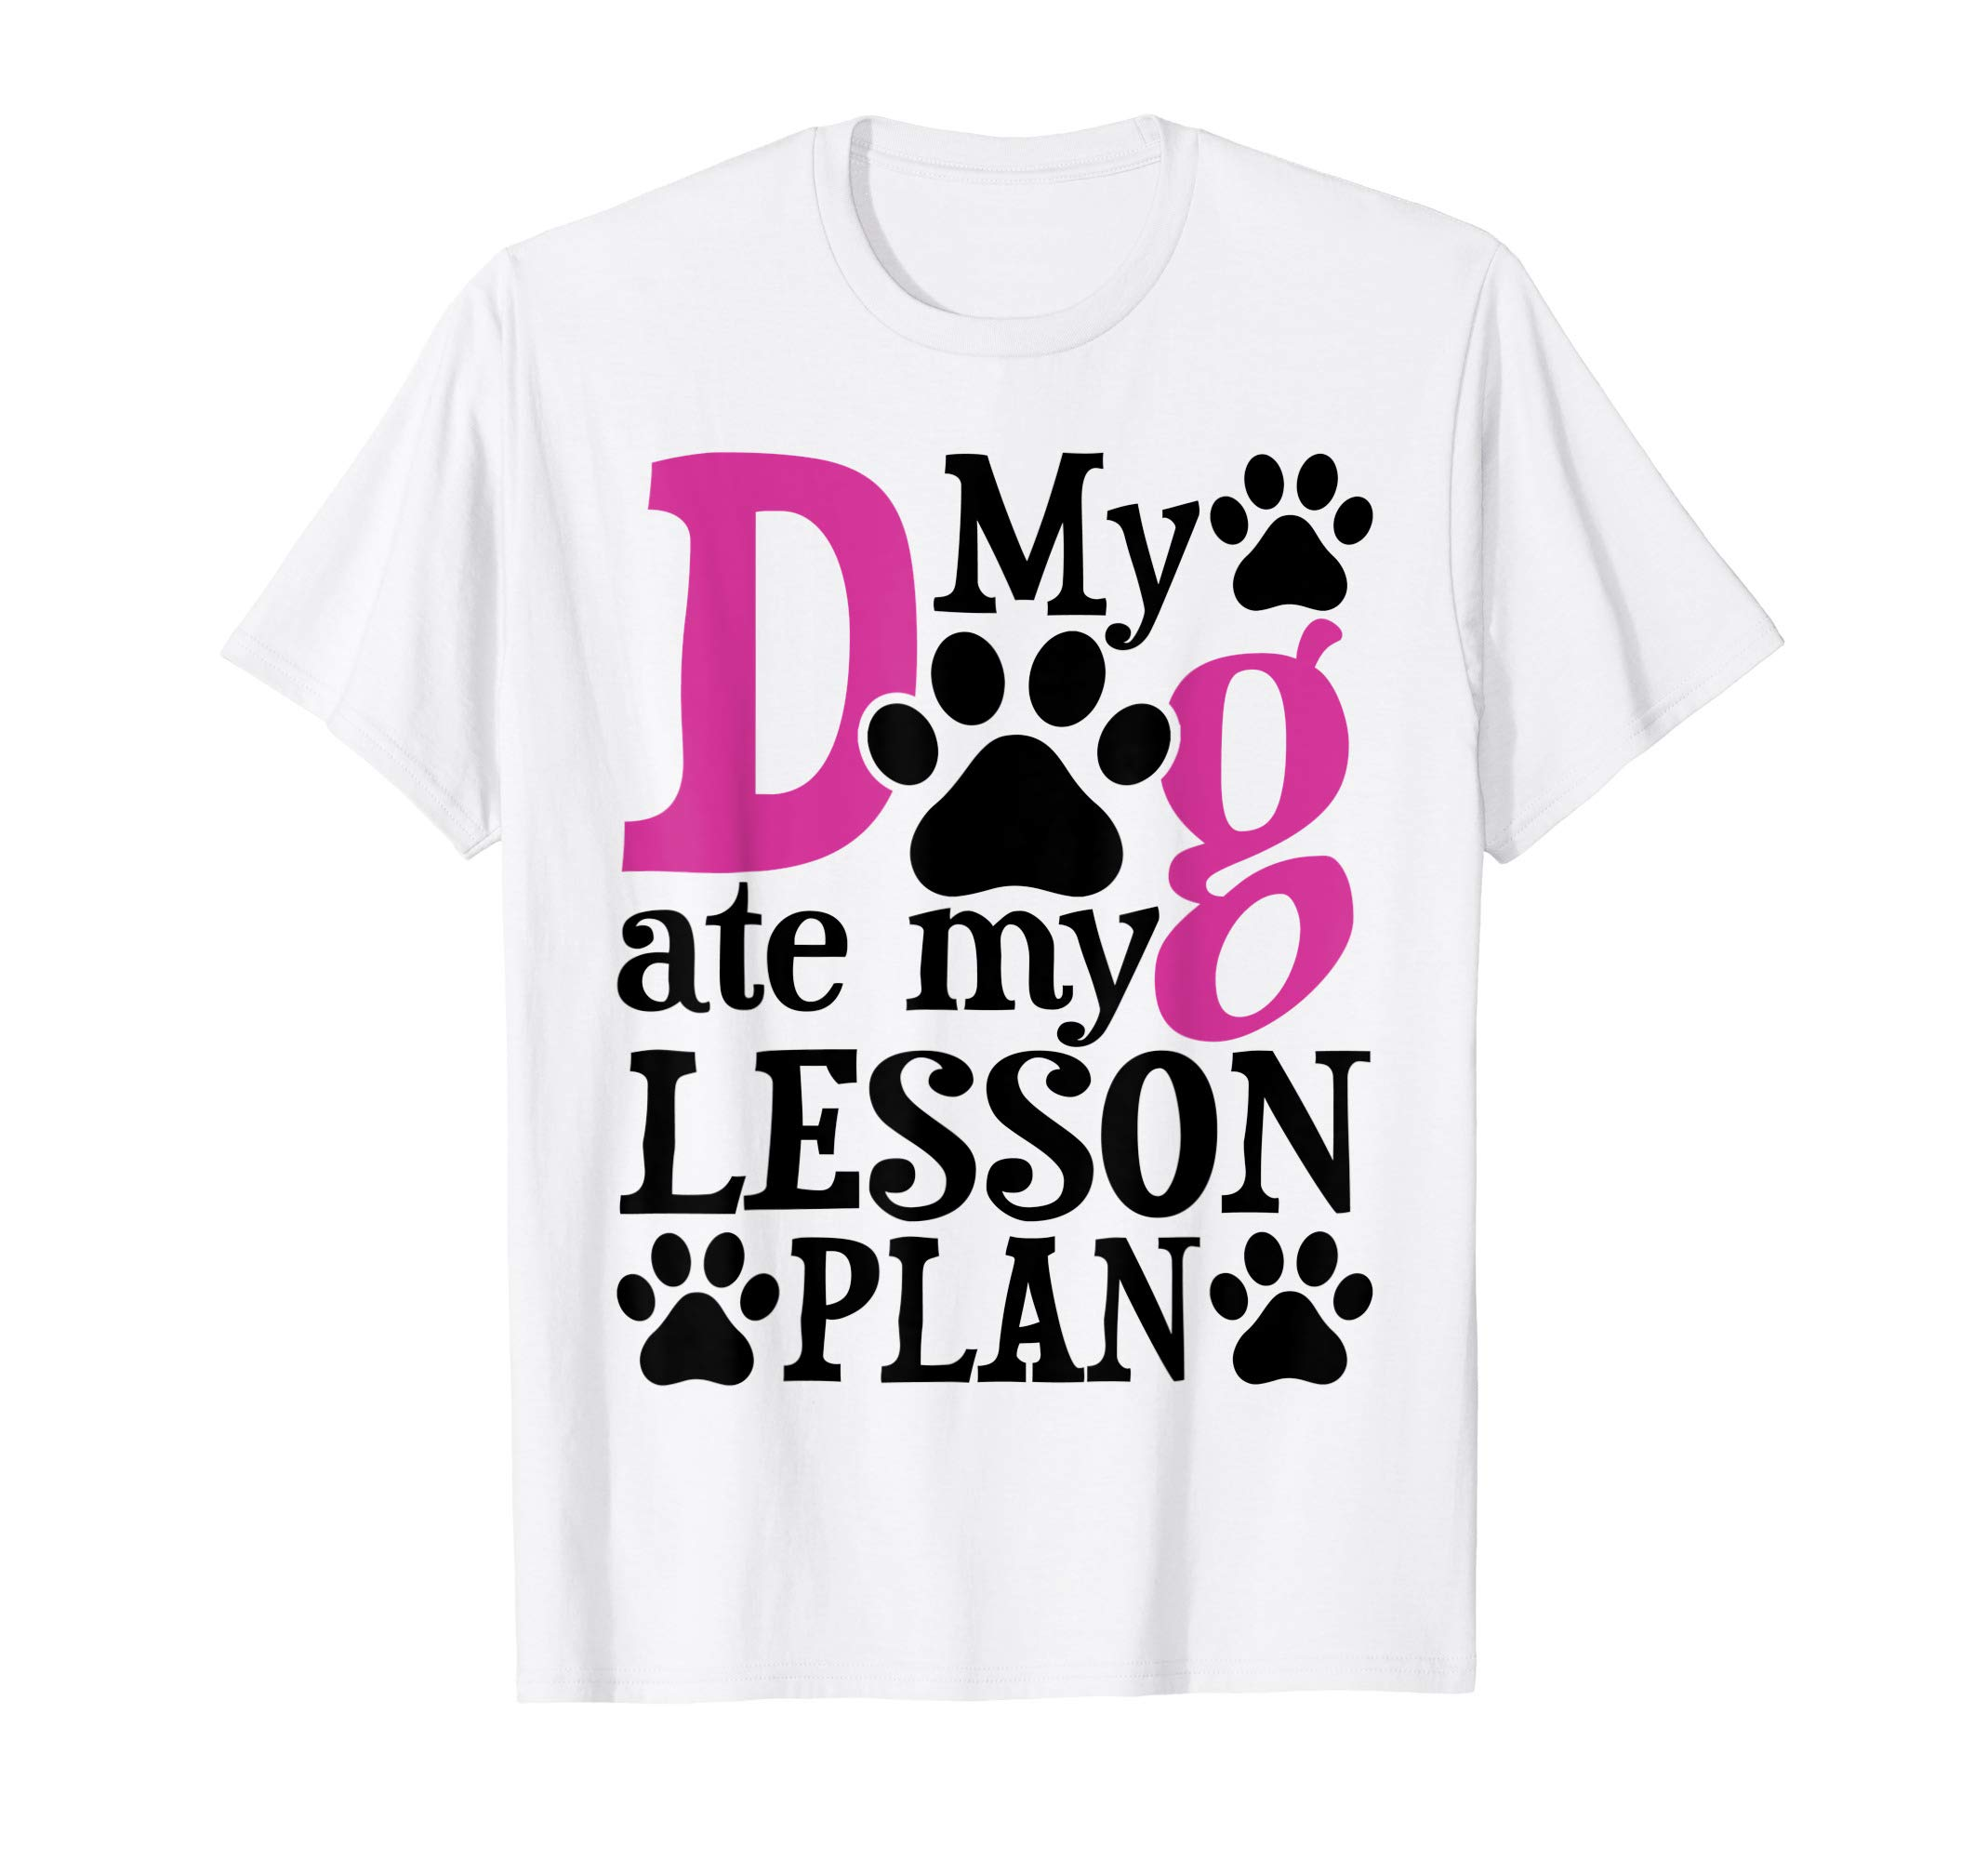 3a366f84427a Dog Ate My Lesson Plan Funny Teacher And Dog Parent Shirt